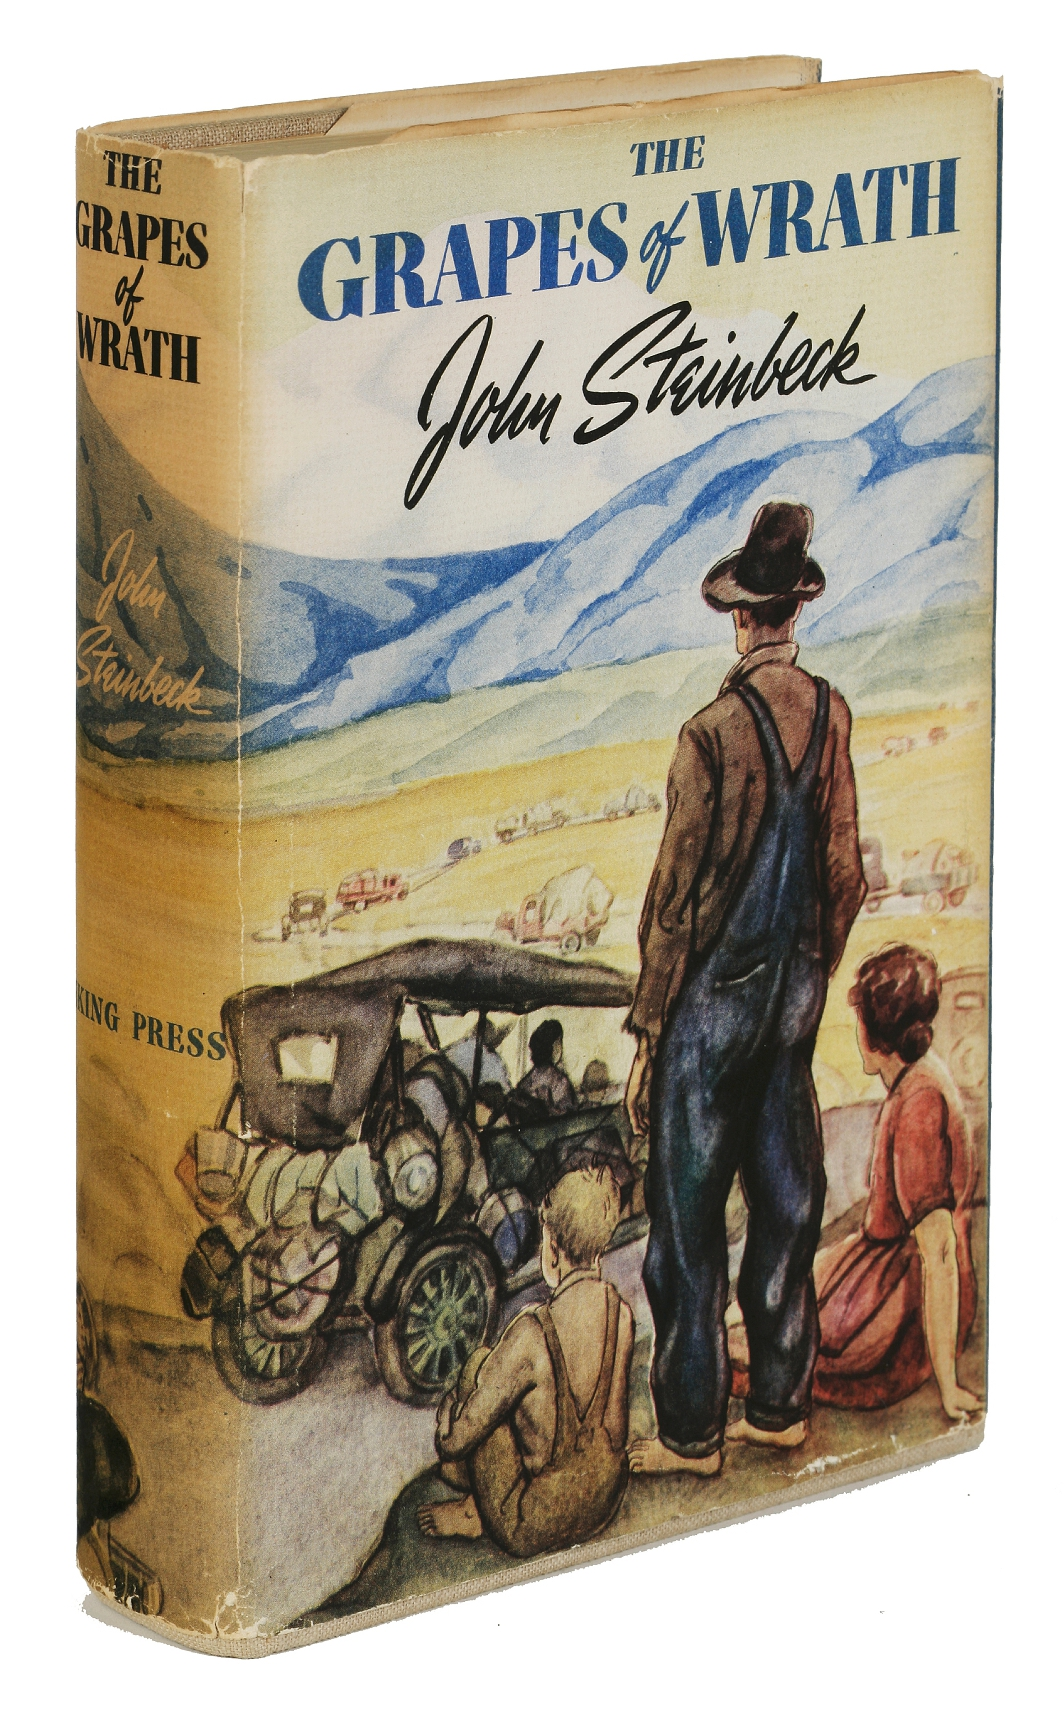 an overview of the migratory experience in the novel grapes of wrath by john steinbeck The grapes of wrath study guide contains a biography of john steinbeck, literature essays, quiz questions, major themes, characters, and a full summary and analysis.